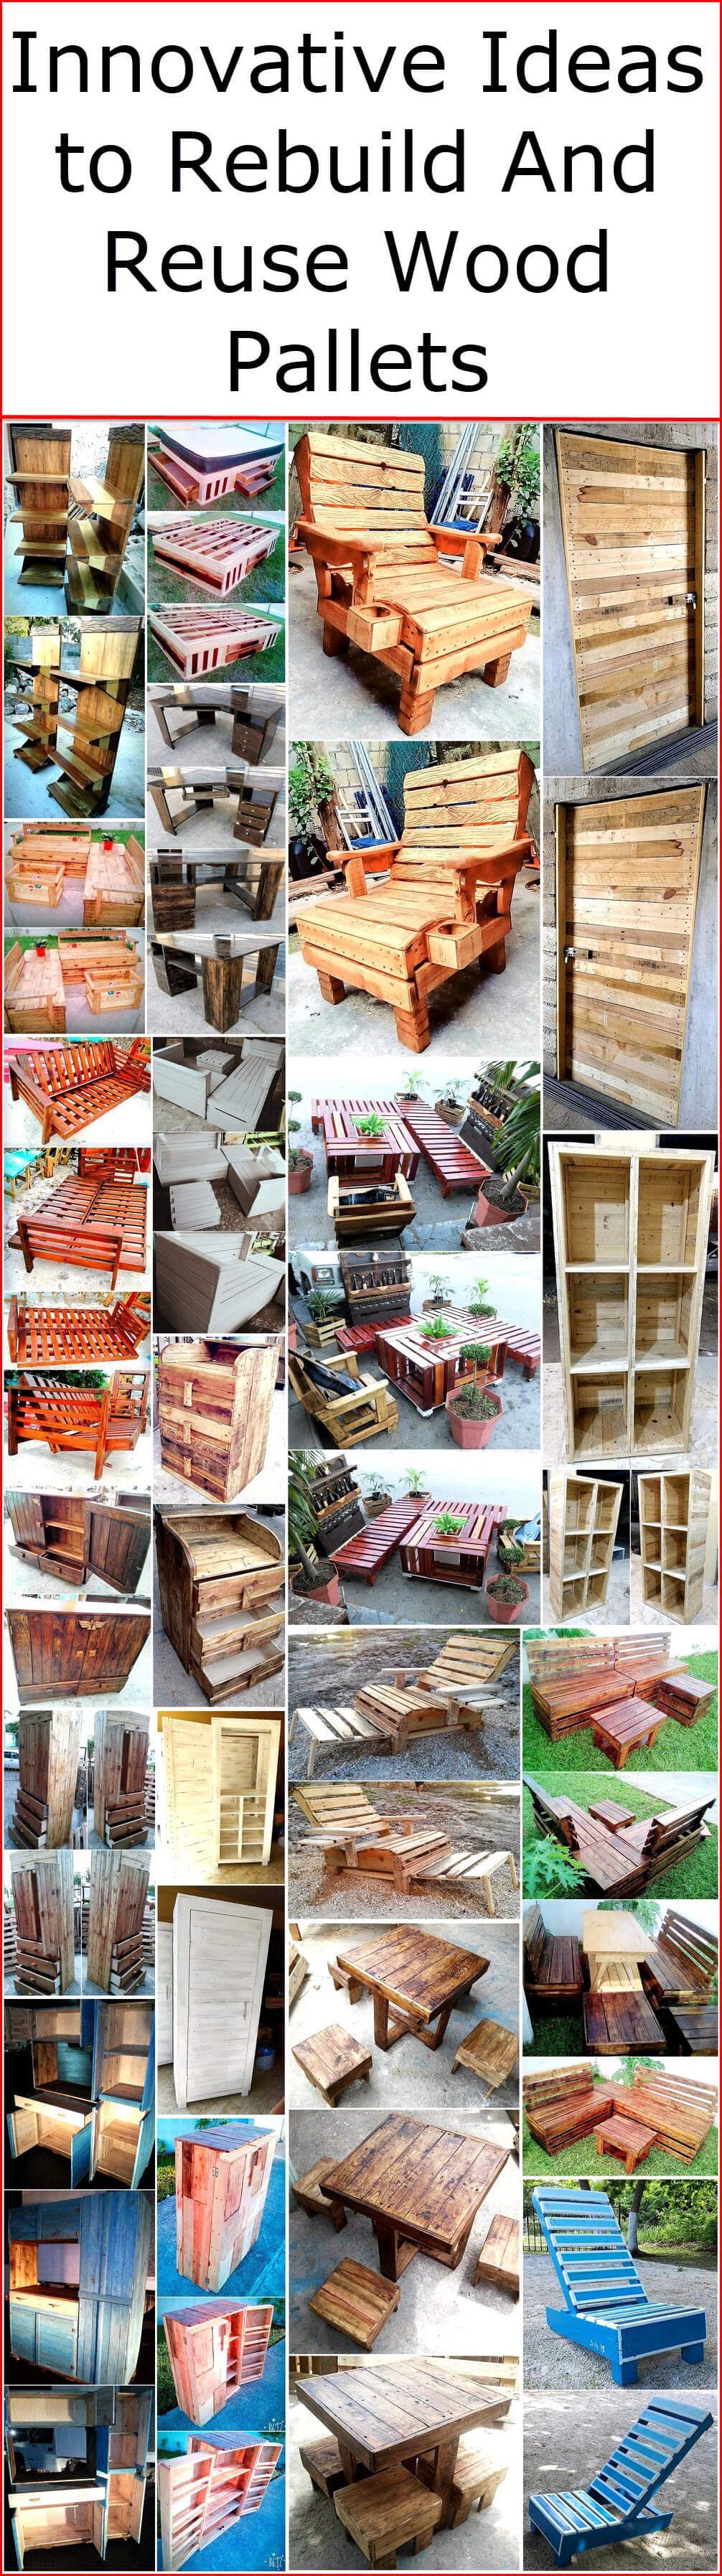 Innovative Ideas to Rebuild And Reuse Wood Pallets